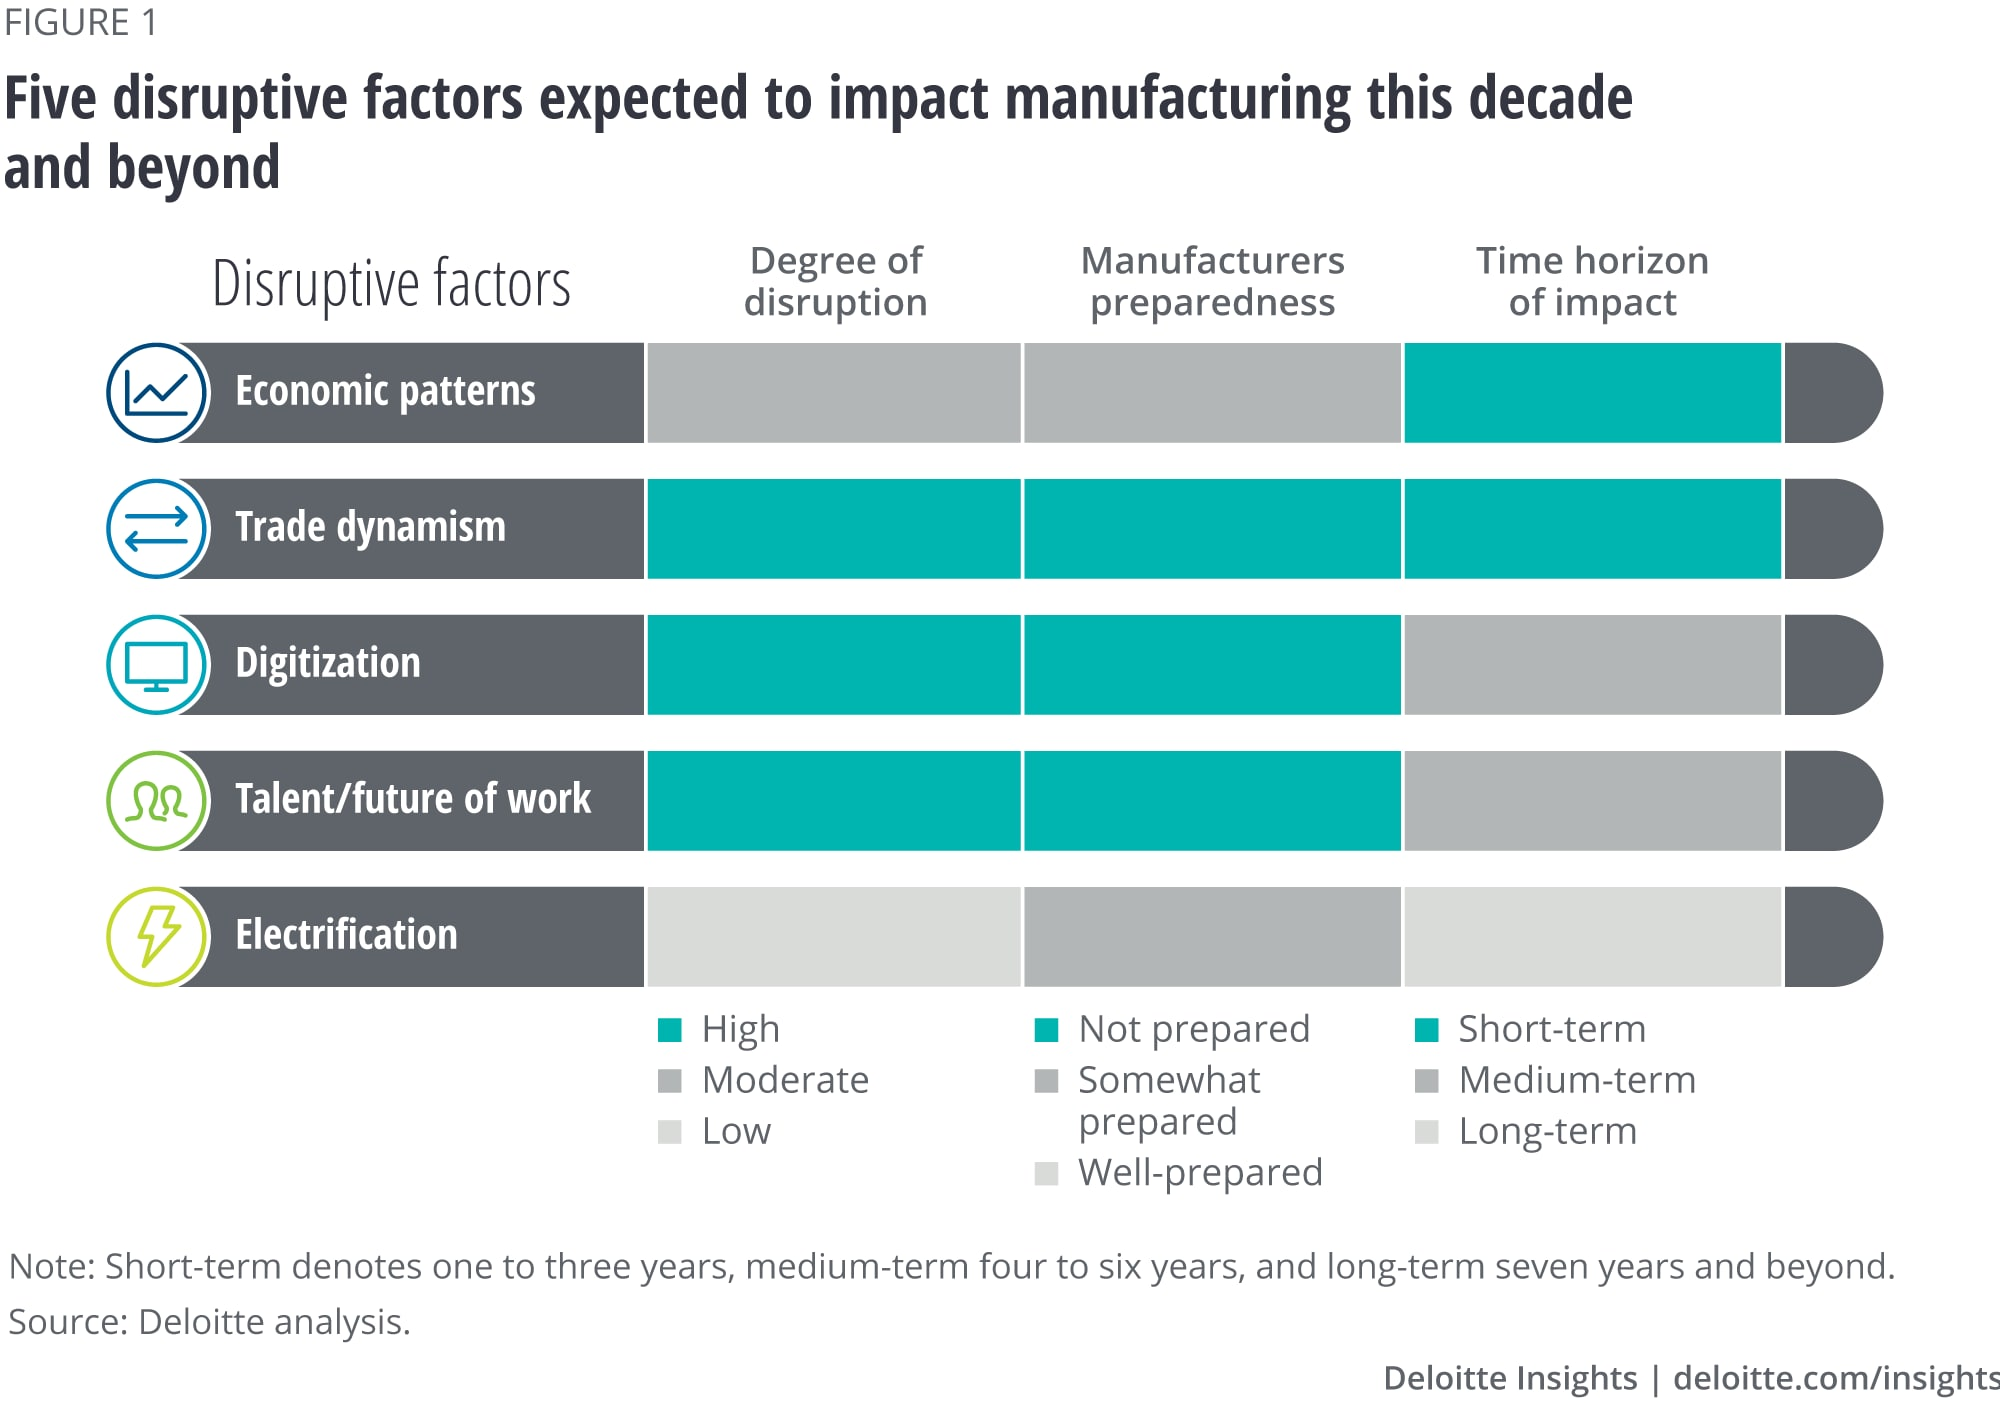 Five disruptive factors expected to impact manufacturing this decade and beyond